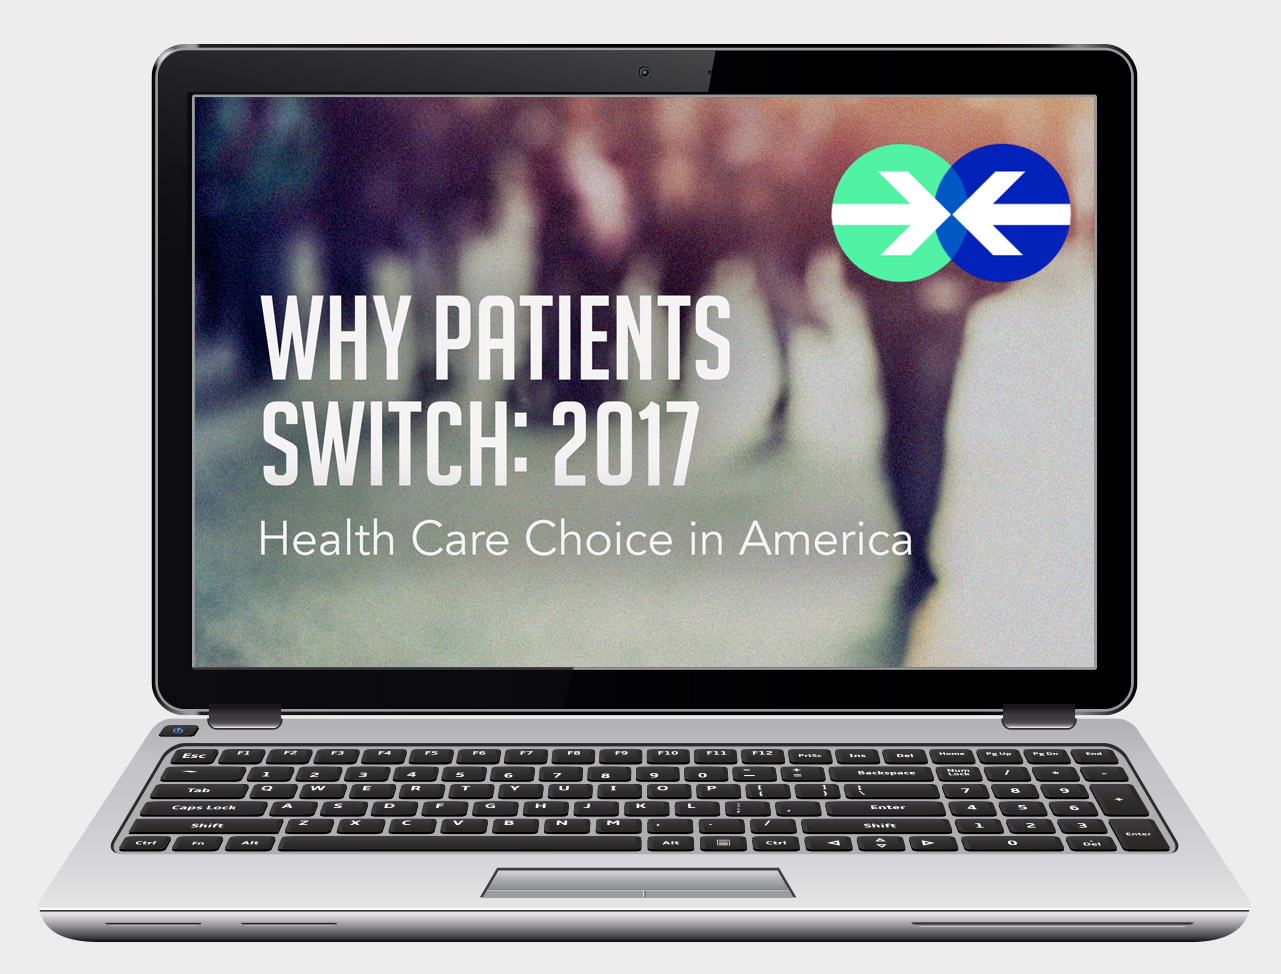 Patients Switch Research Graphic